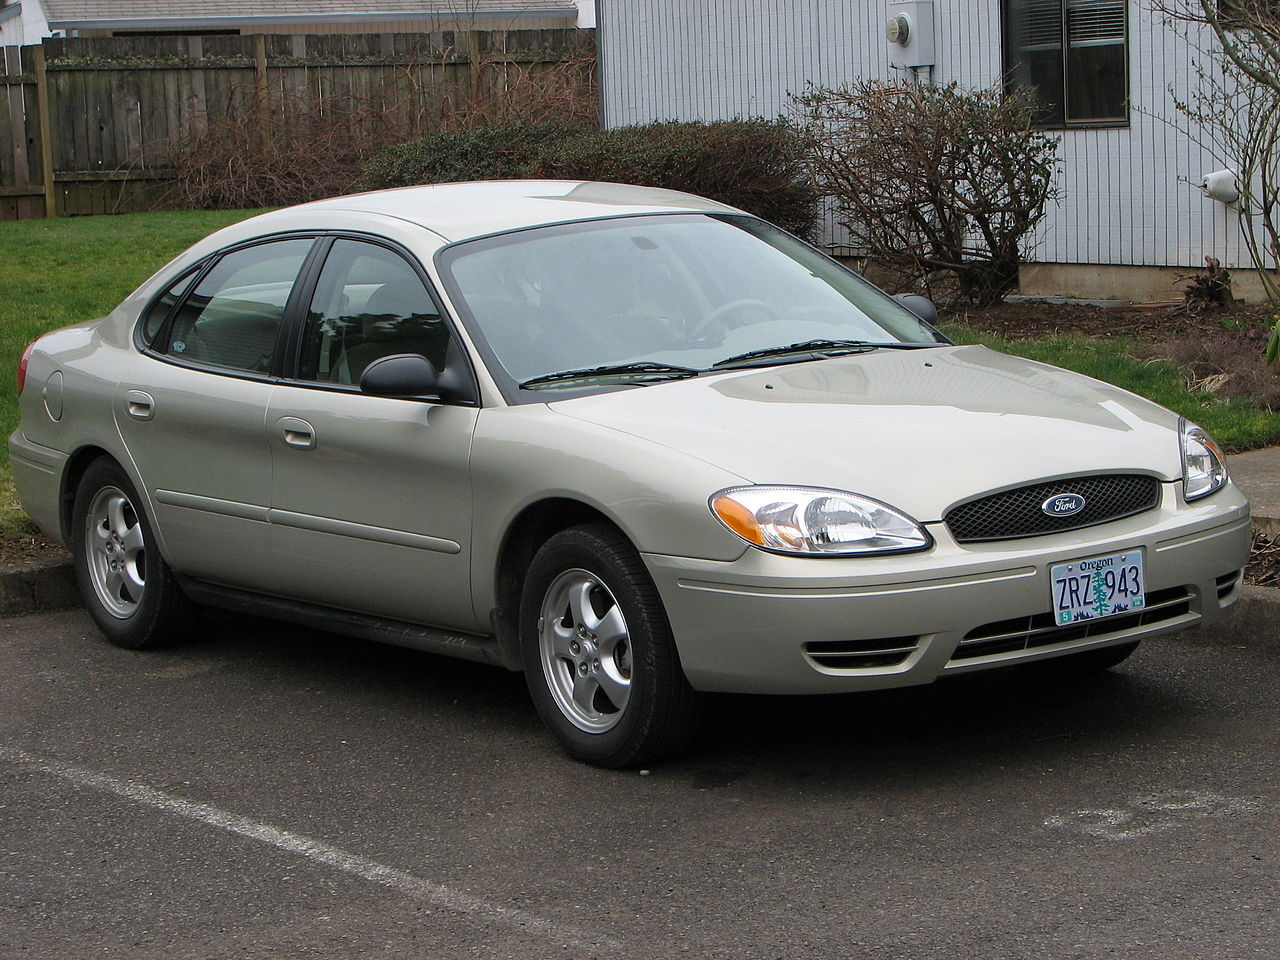 File Ford Taurus 2005 Photograph By Theo 2006 Jpg